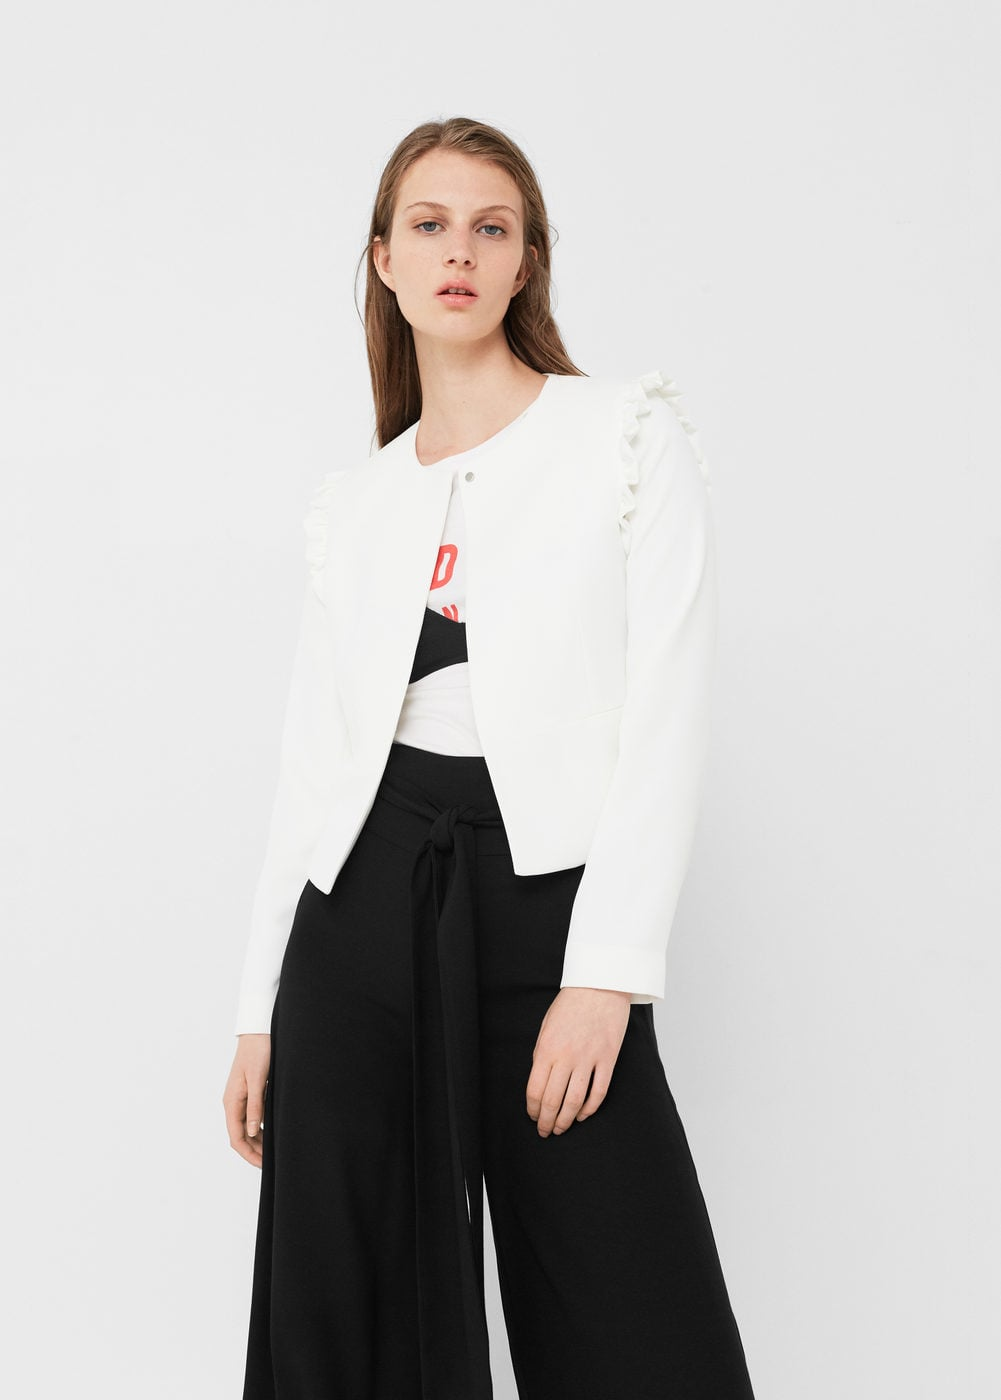 mango structured ruffle blazer - office fashion - how to build rapport